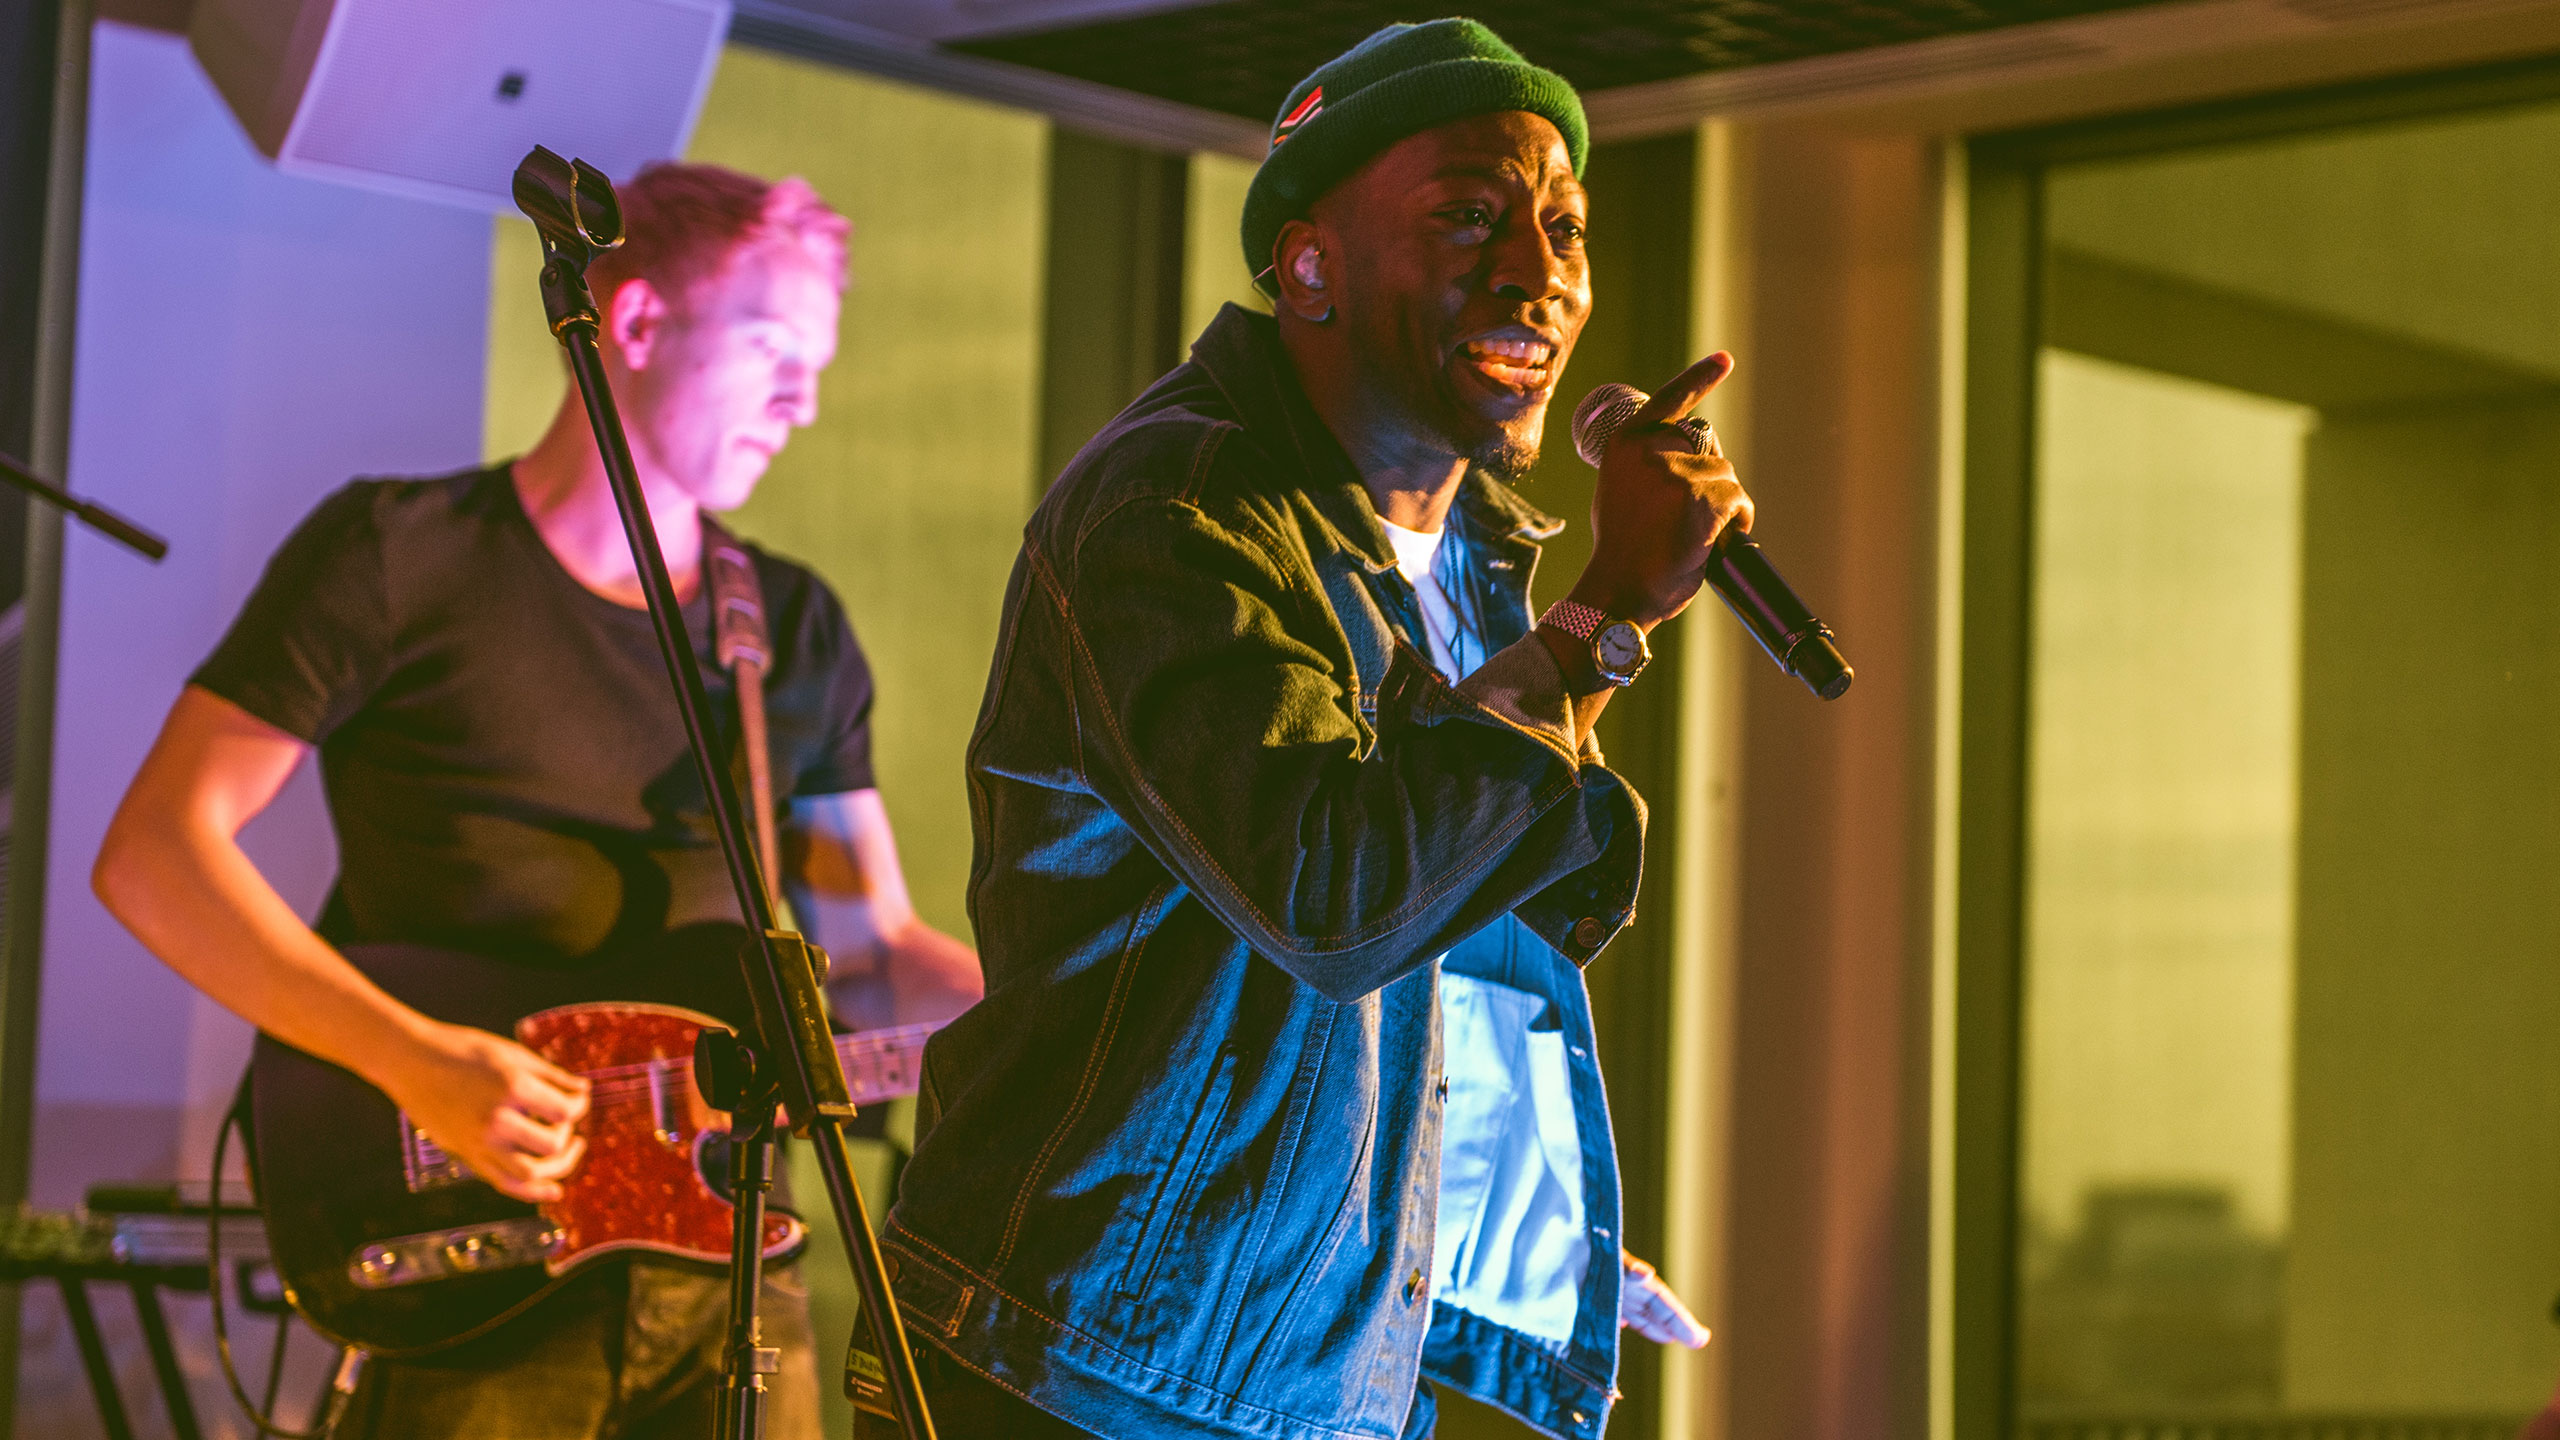 Tiggs Da Author performs at PRS Presents with a man playing guitar behind him